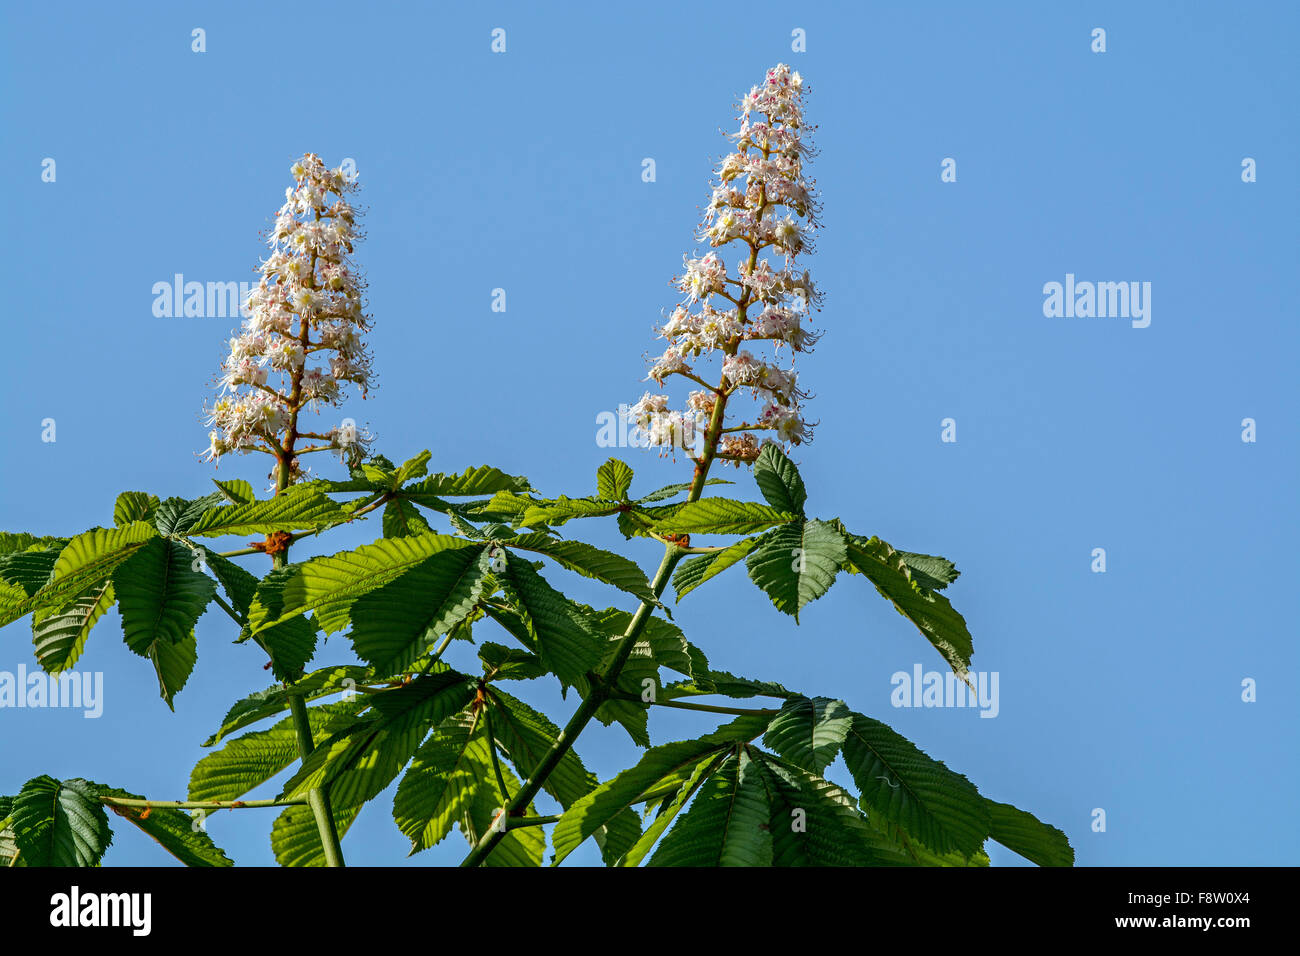 Foliage and flowers of horse-chestnut / conker tree (Aesculus hippocastanum) in spring - Stock Image